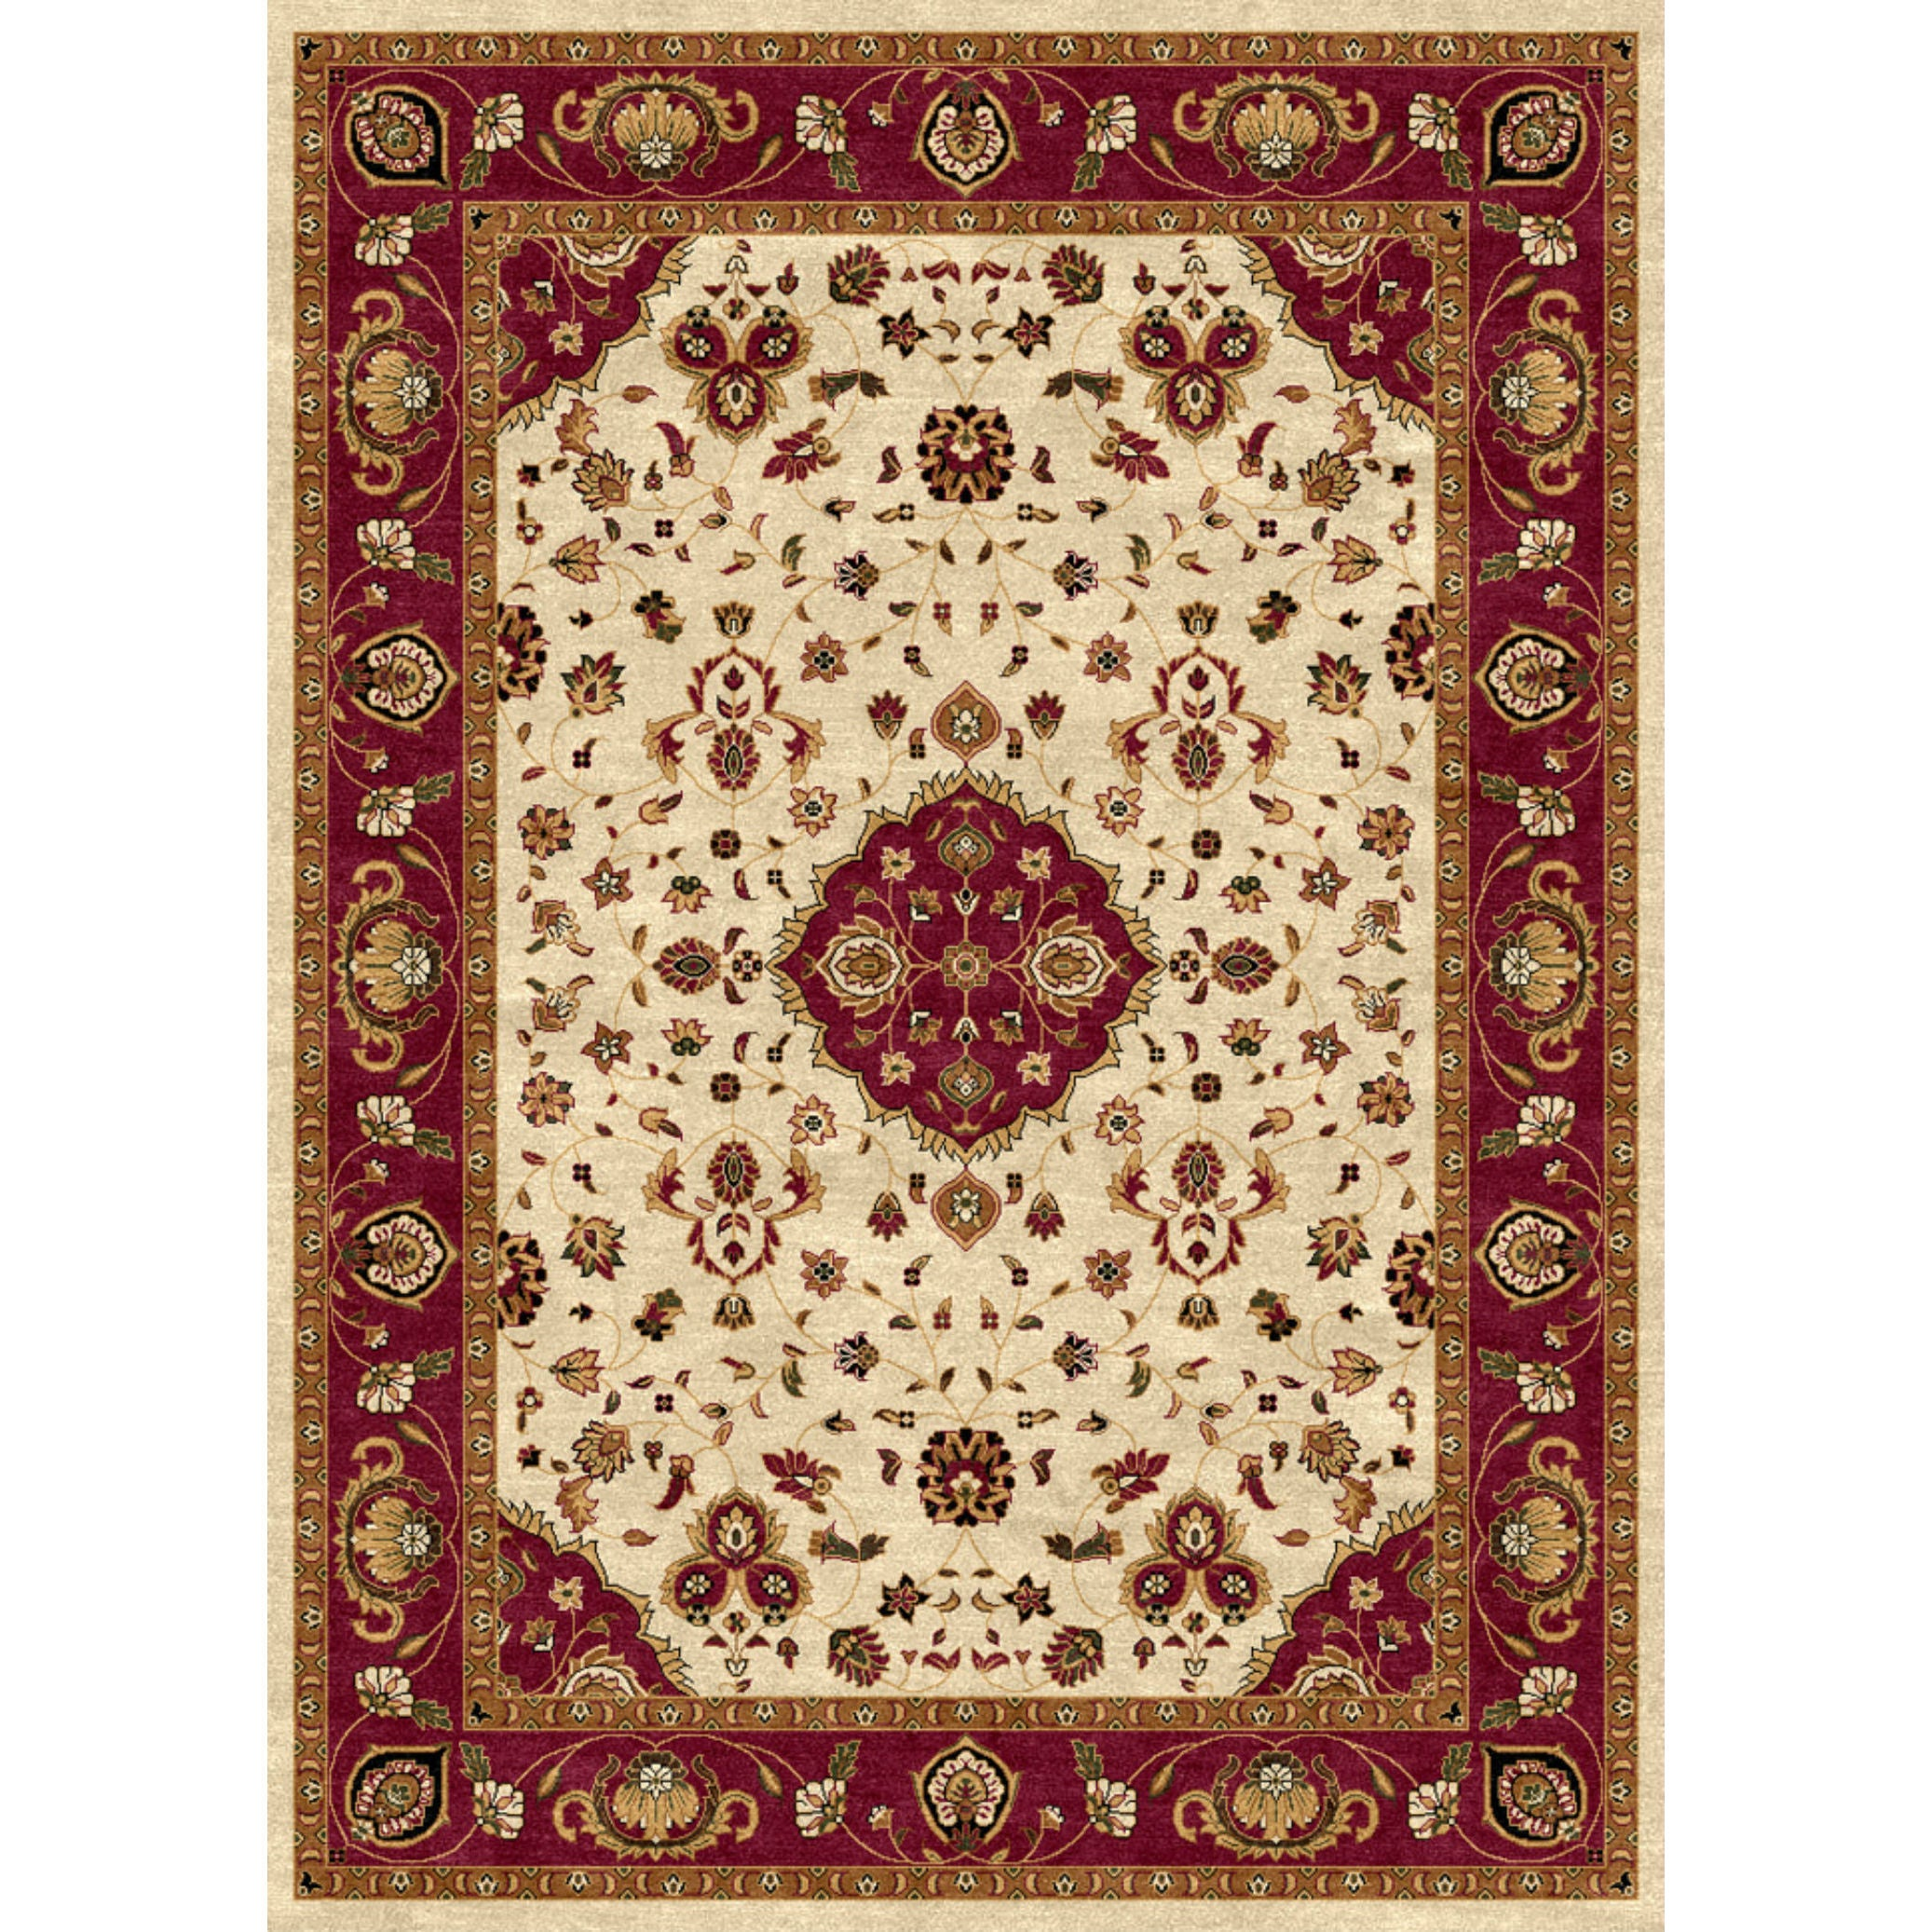 Shop ethnic collection cream burgundy polypropylene turkish area rug free shipping today overstock 14325684